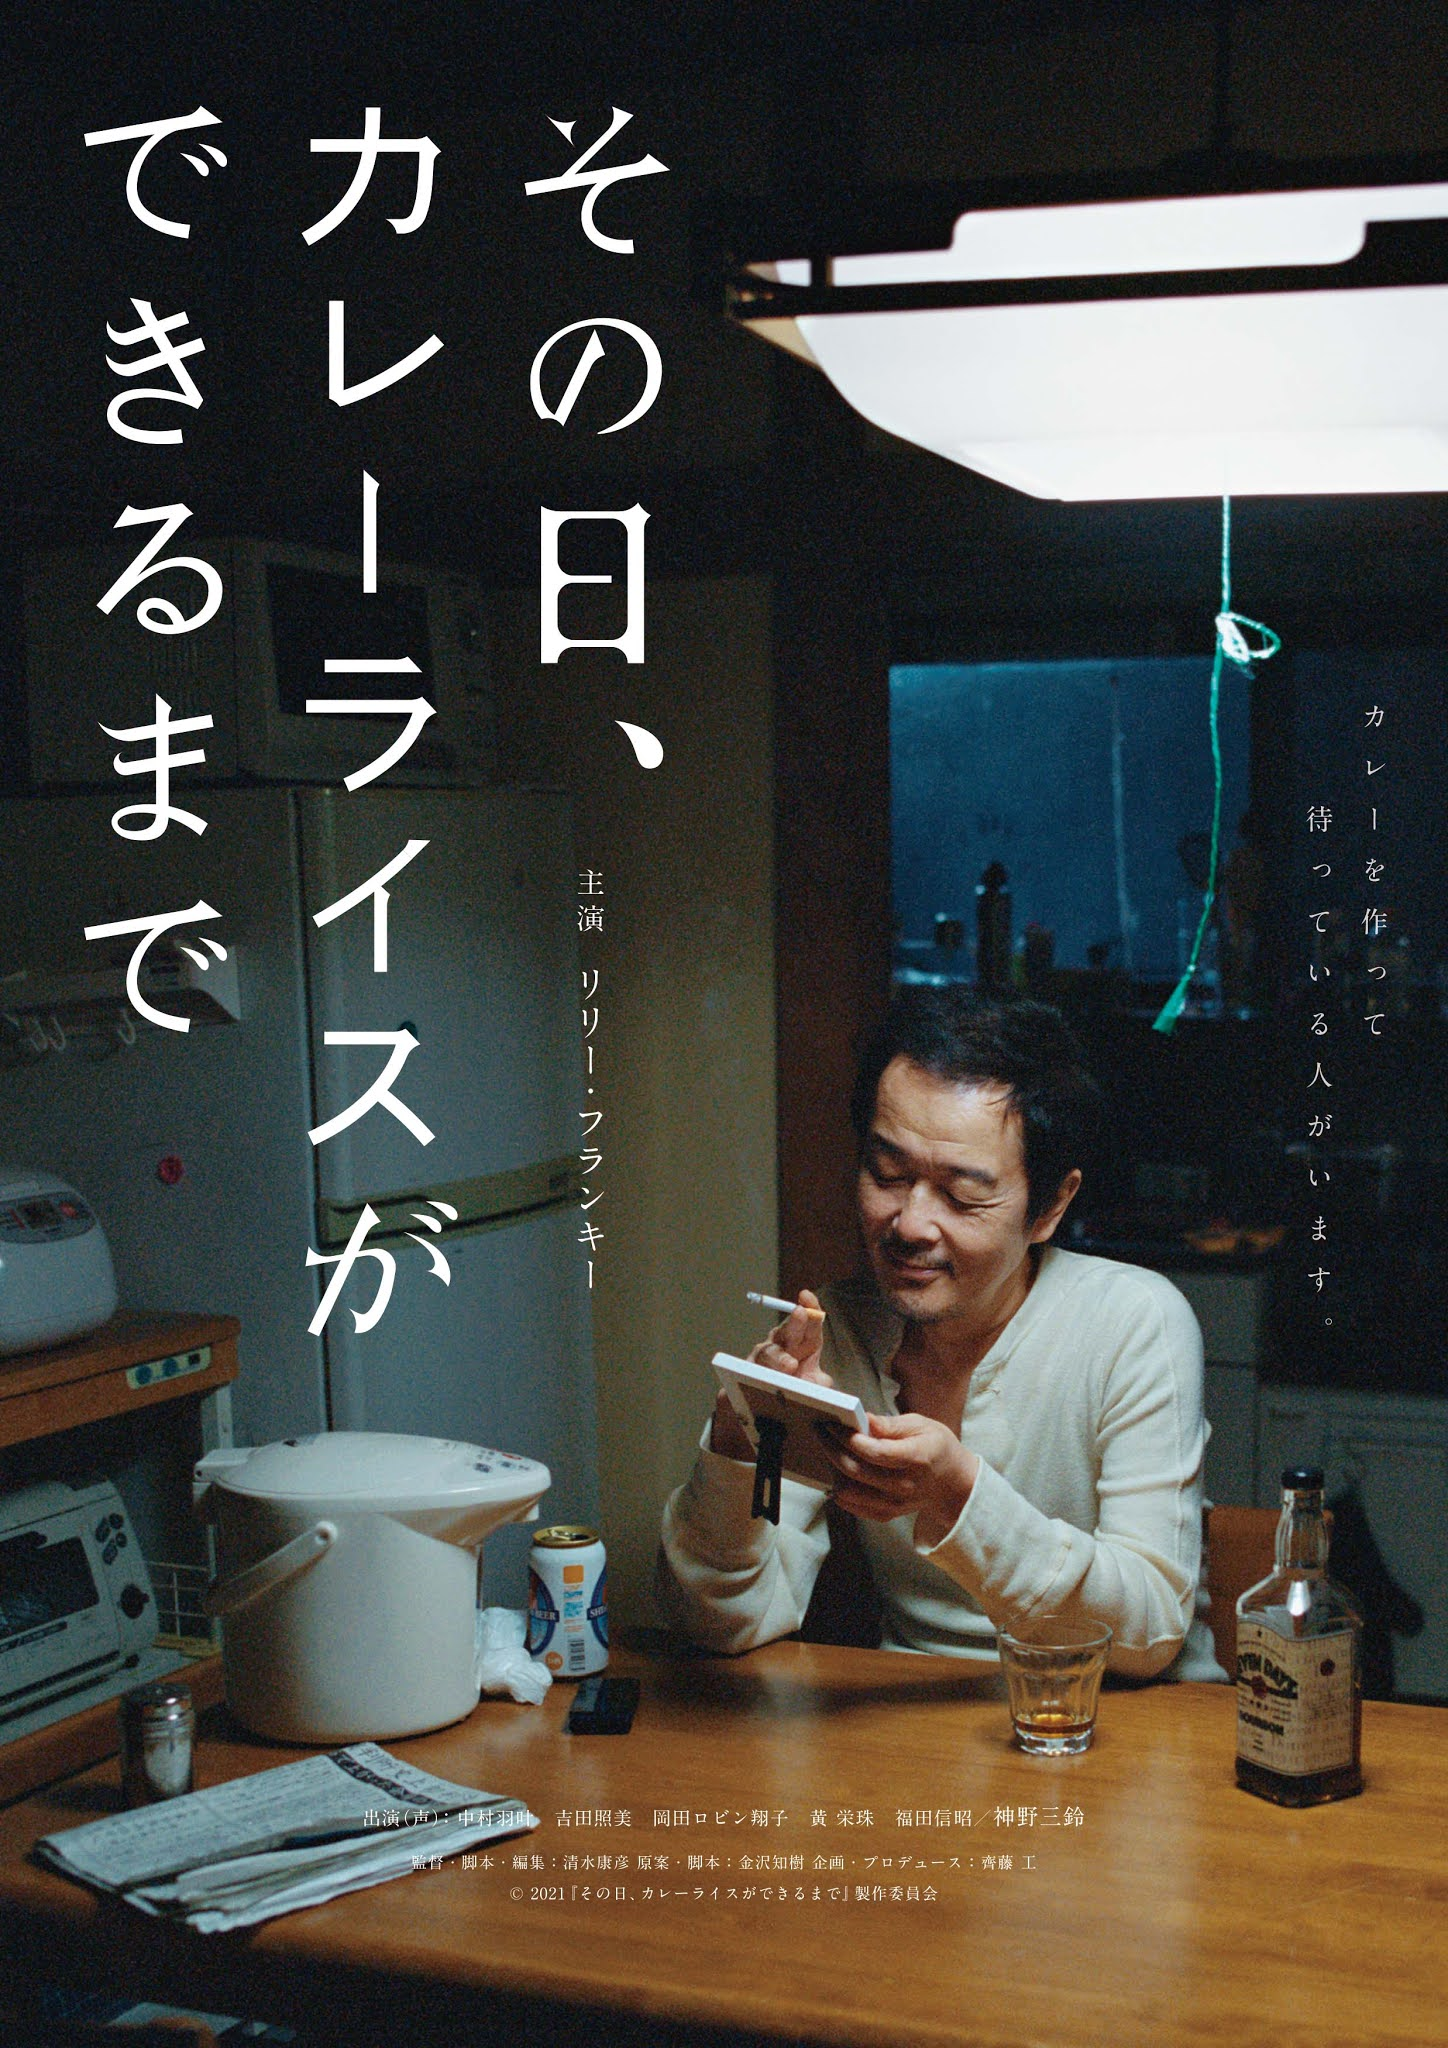 When The Curry Is Ready film - Yasuhiko Shimizu - poster